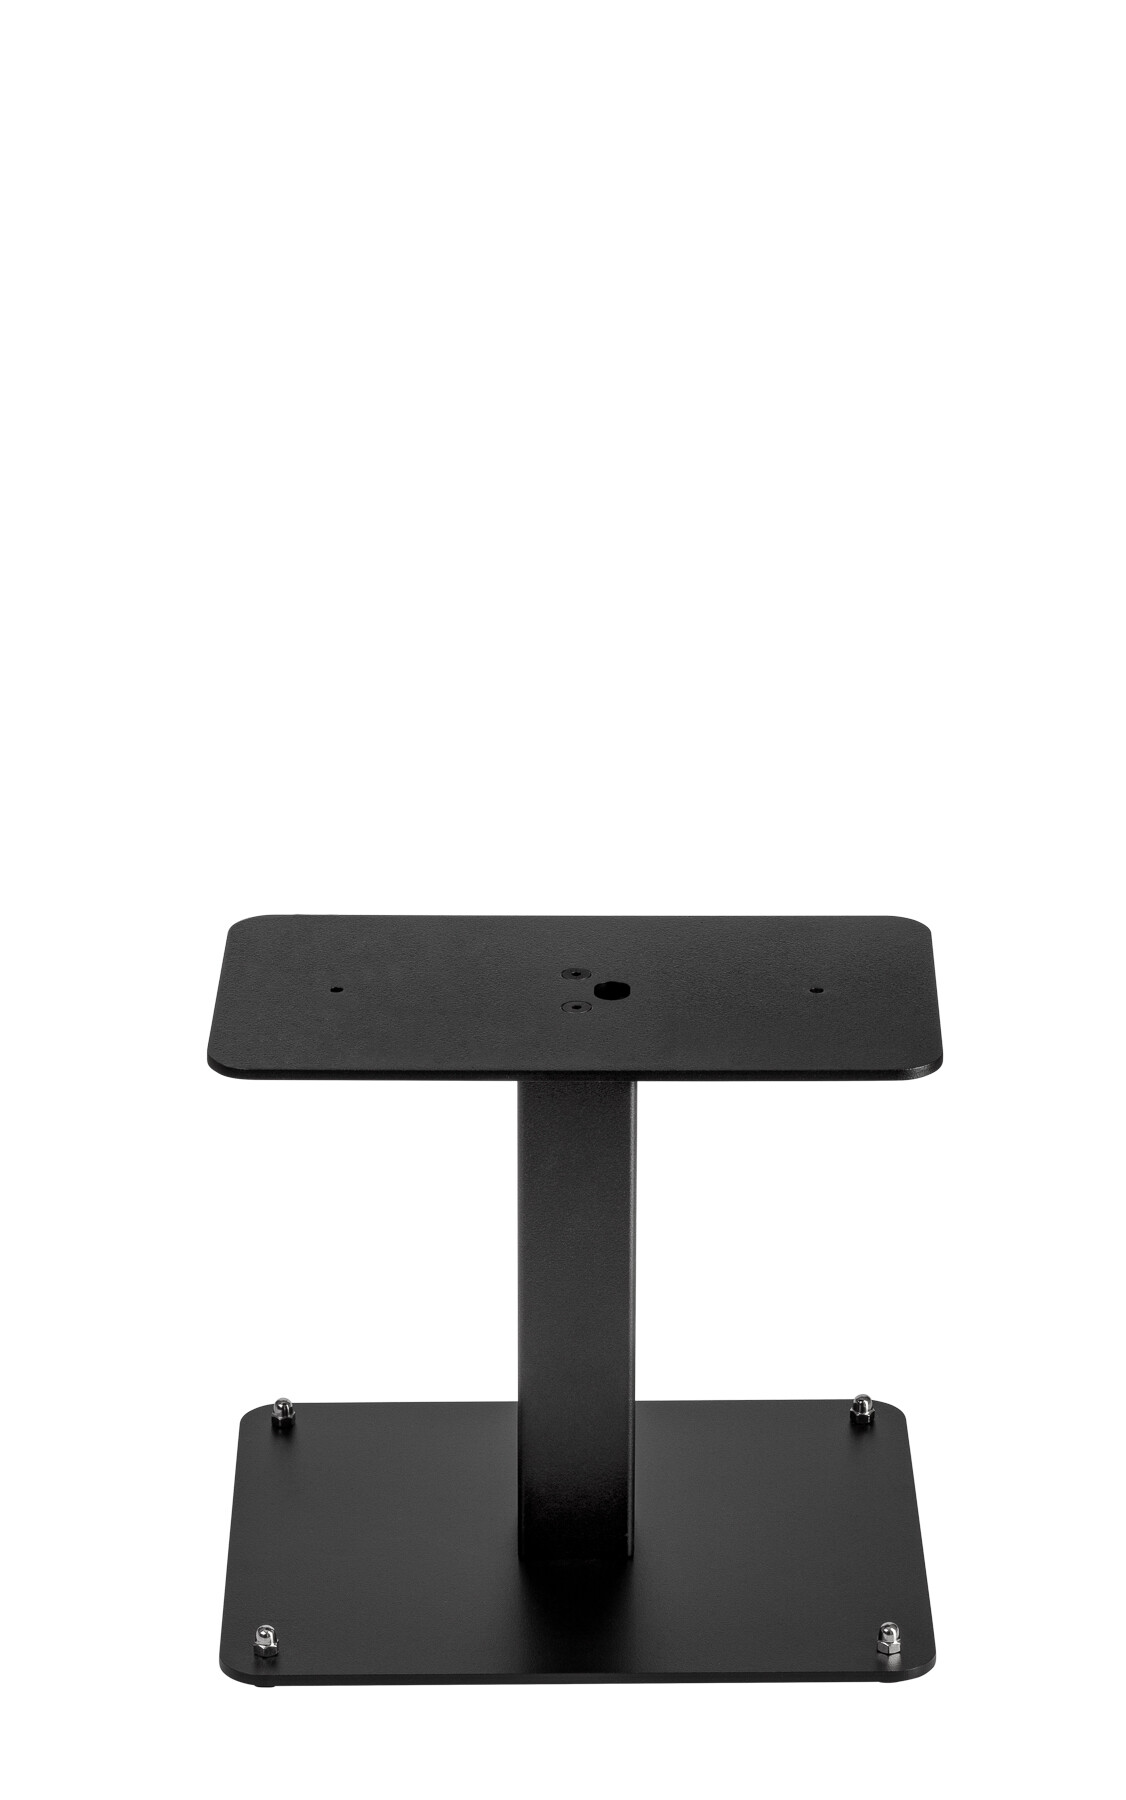 Ad Astra Center Speaker Stand Small - Product photography sample